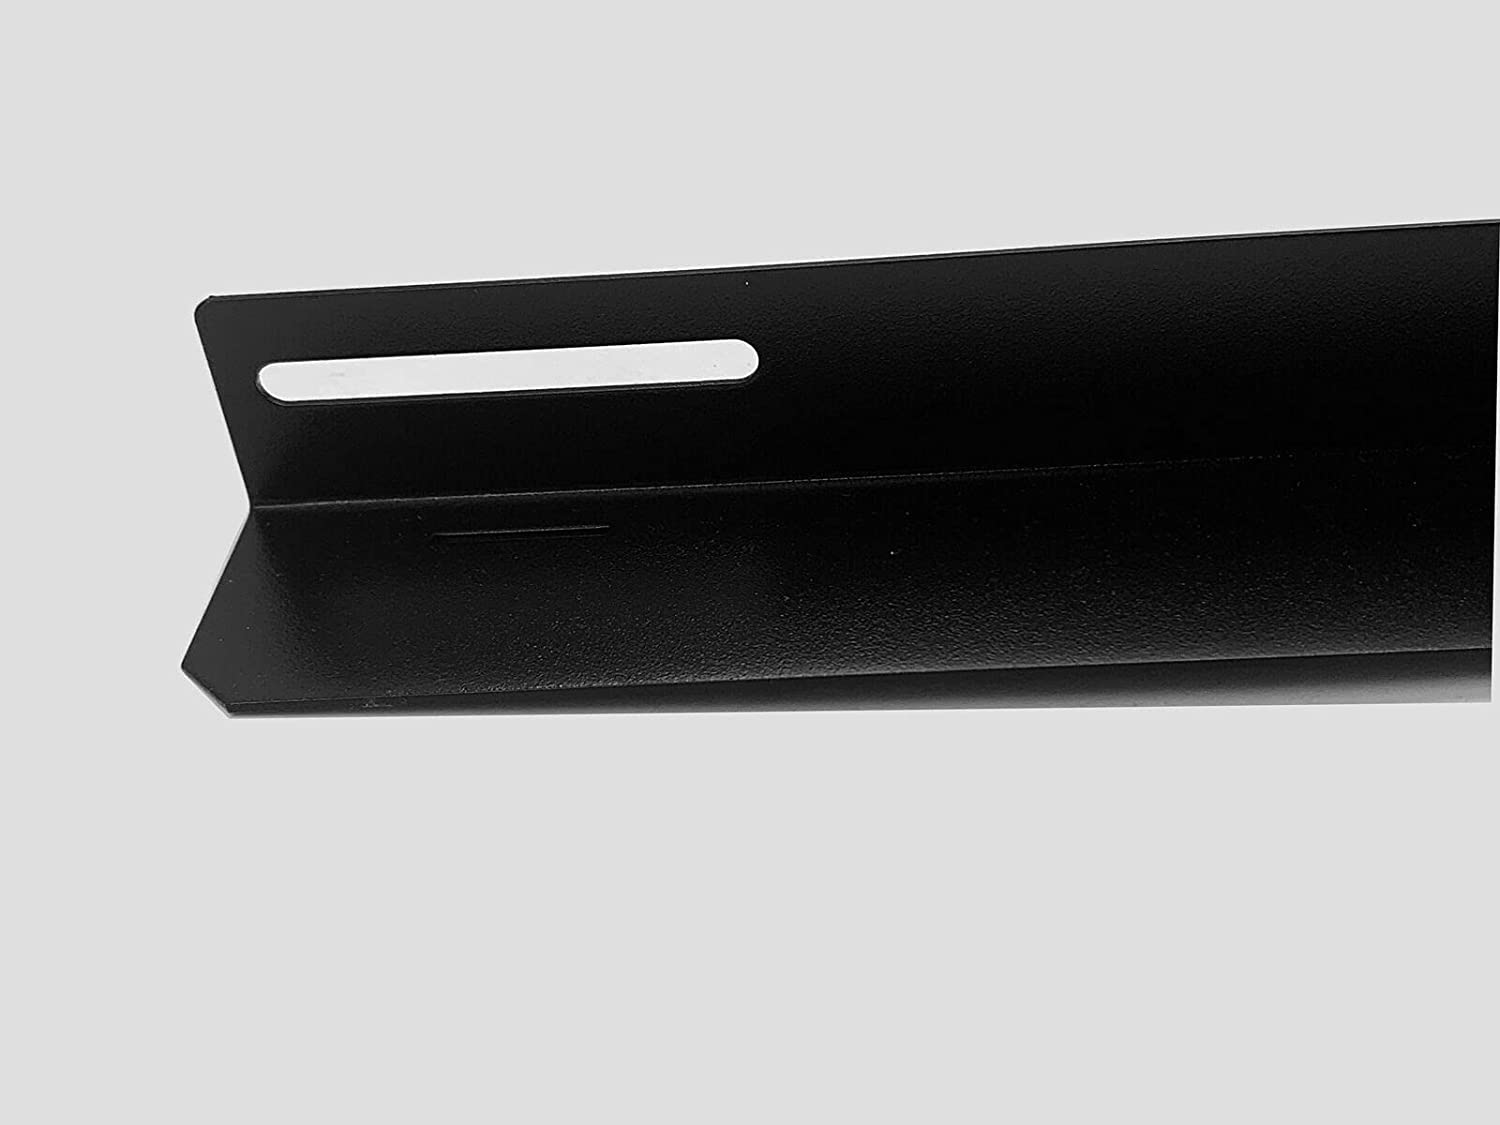 RAISING ELECTRONICS Rack Mount Supporting Rails L-Shape 1 Pair 13.5inch Long for Cabinets/Racks